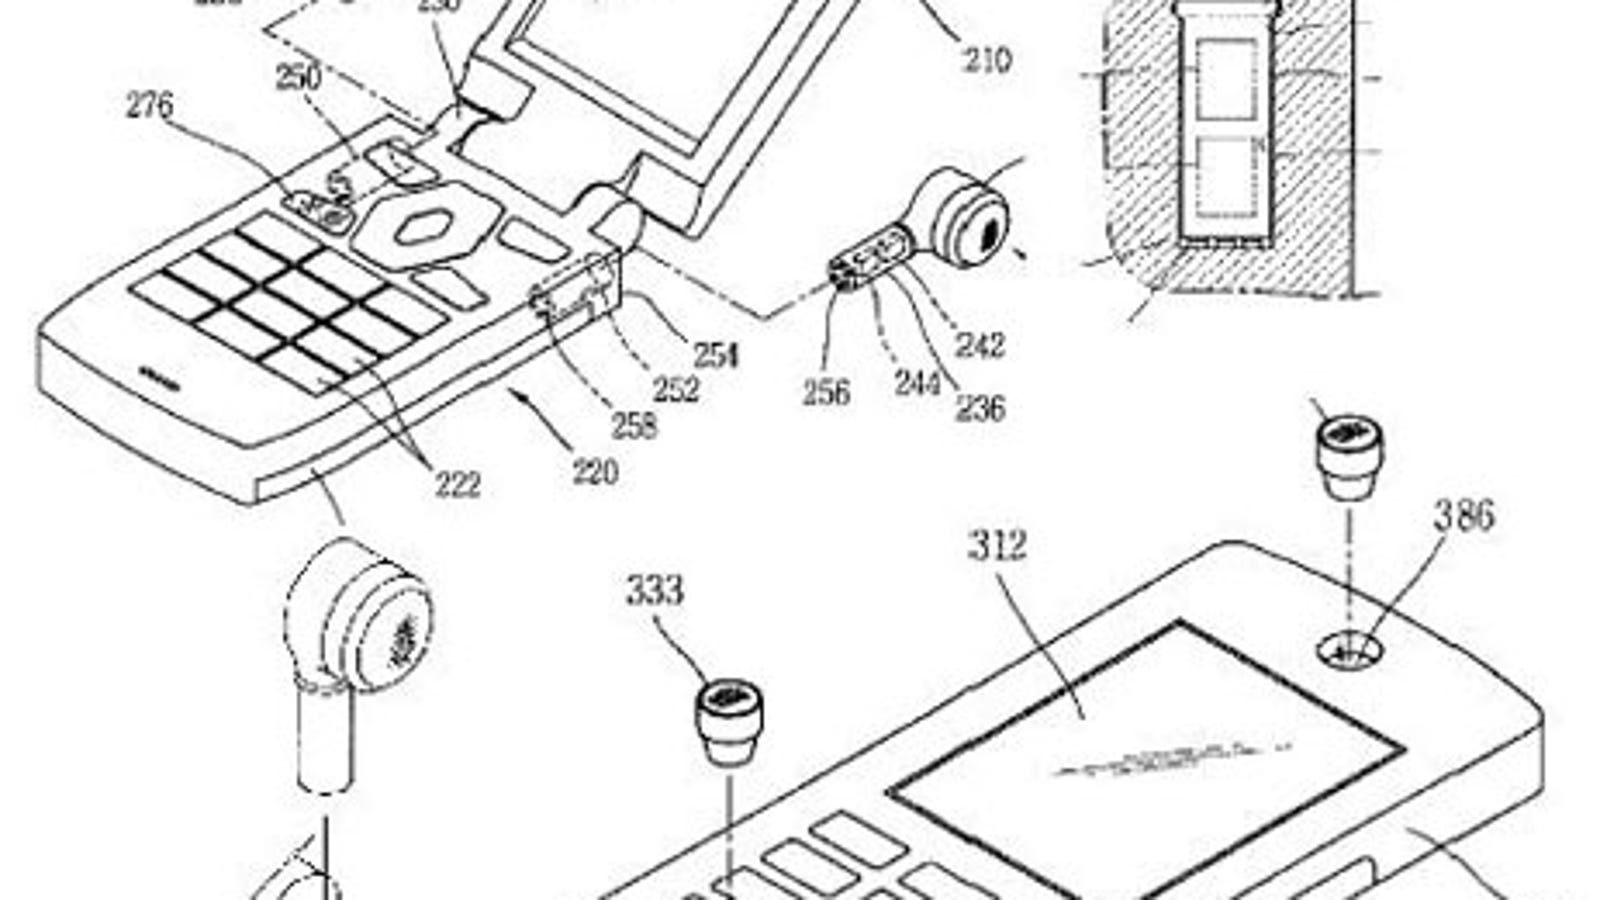 sony ear buds wireless headphones - LG Files Patent for Way-Cool Detachable Wireless Earbuds